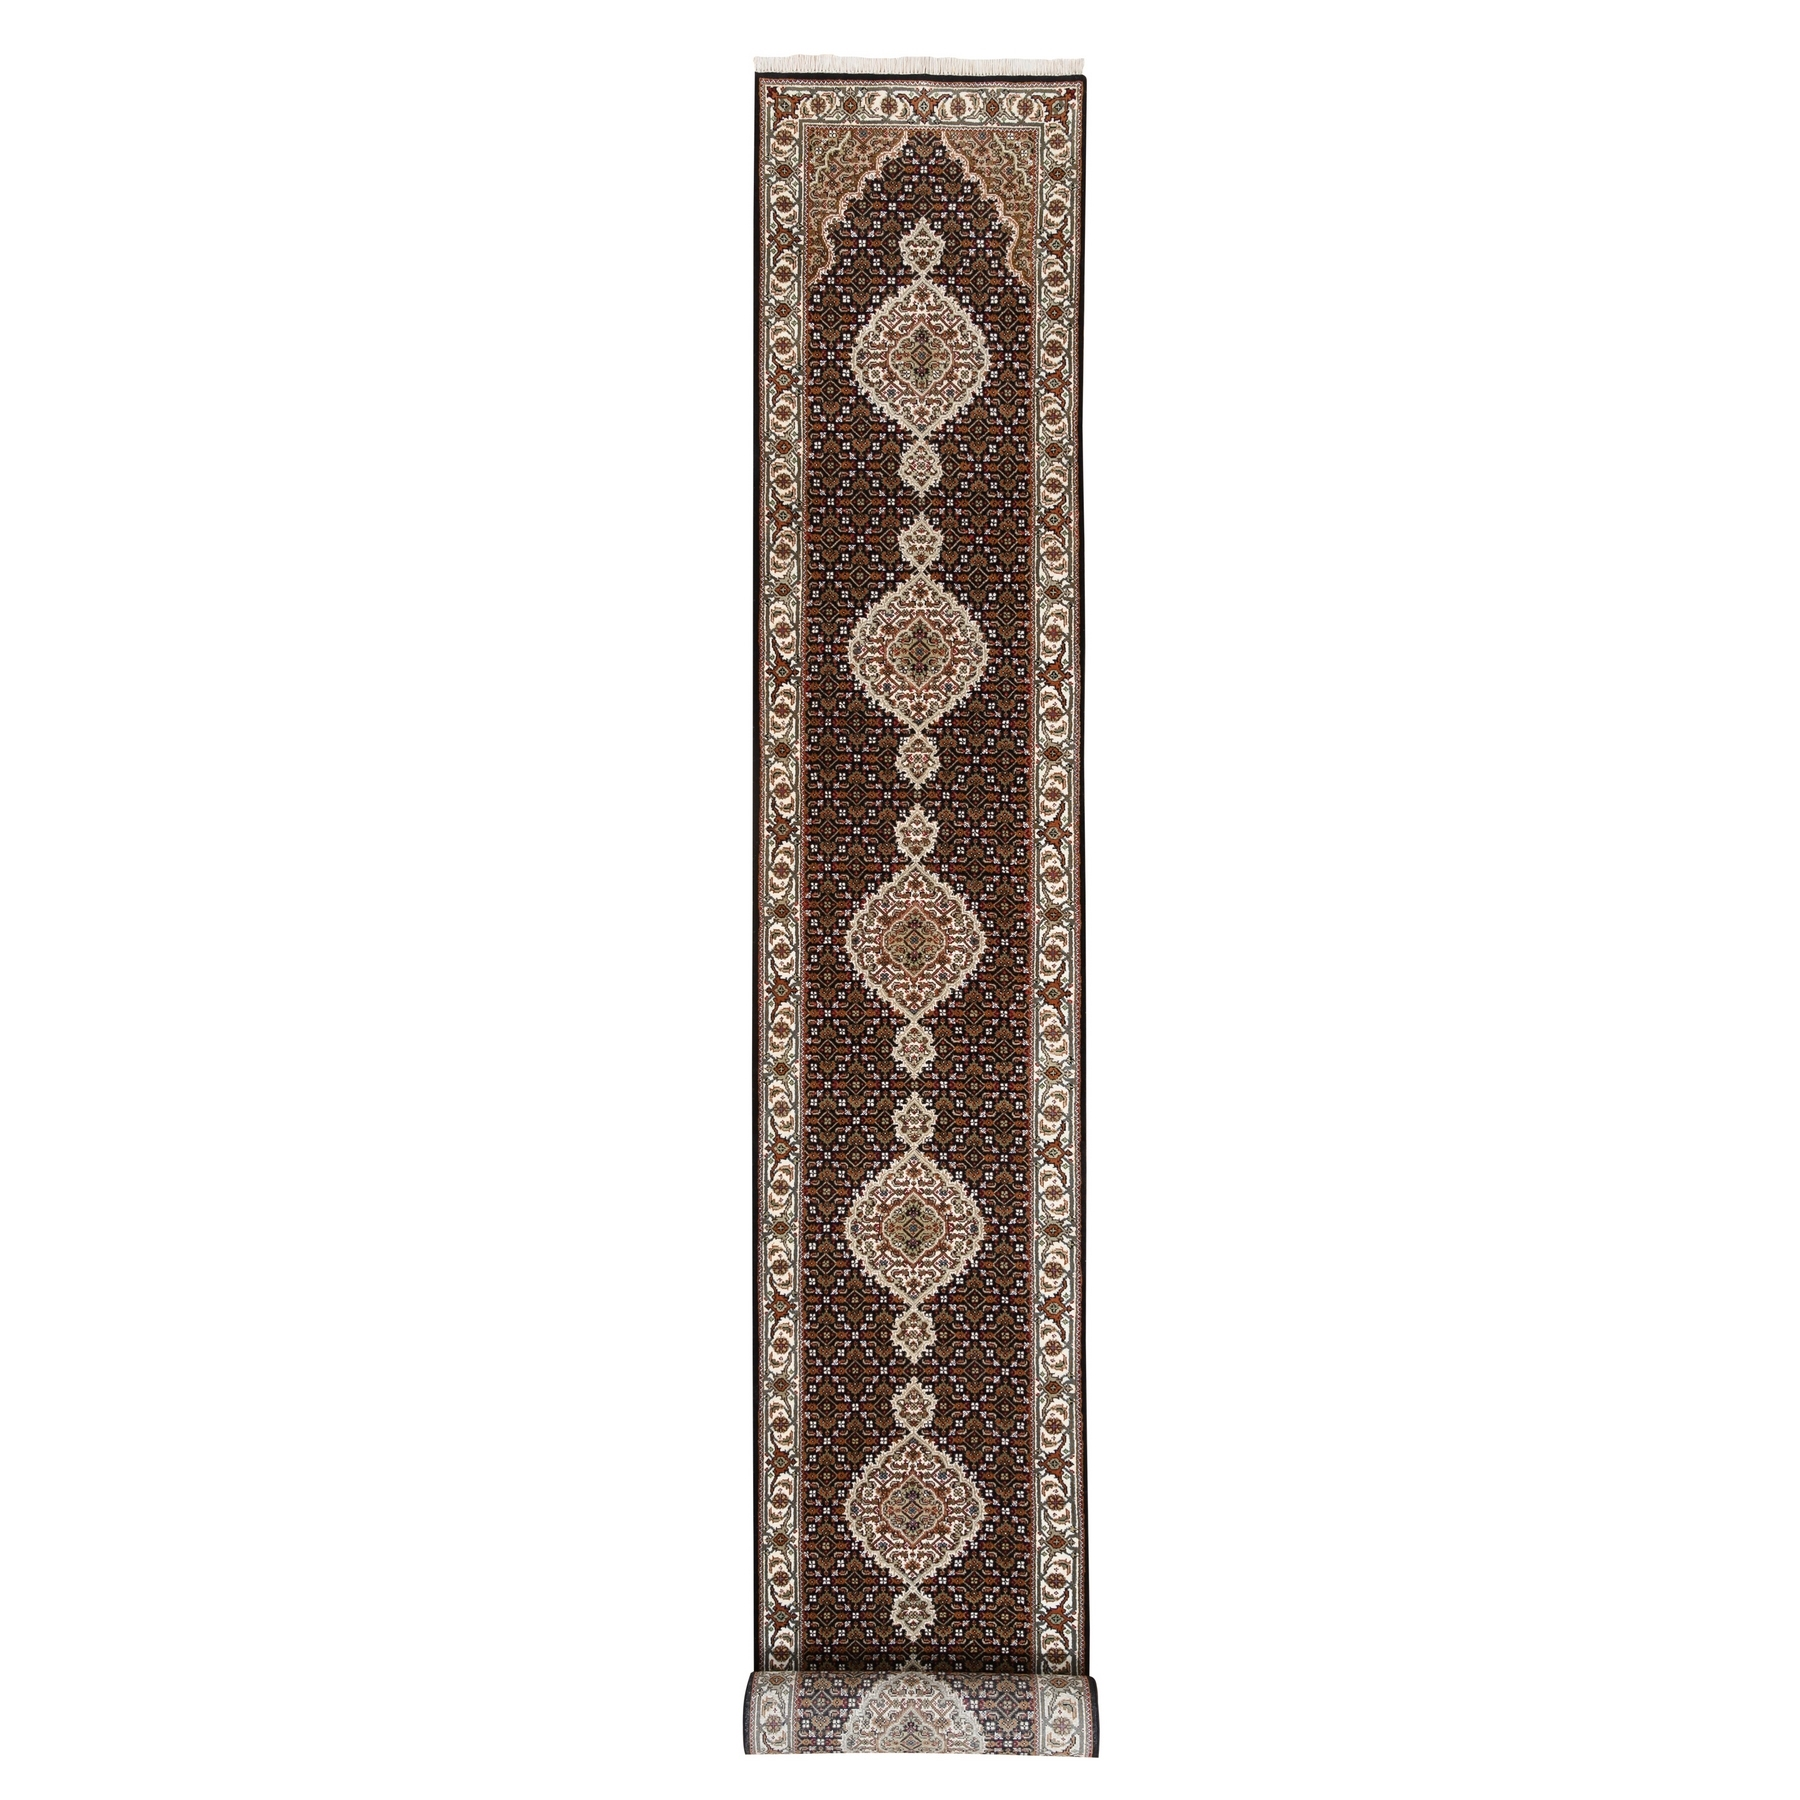 Pirniakan Collection Hand Knotted Black Rug No: 1124972